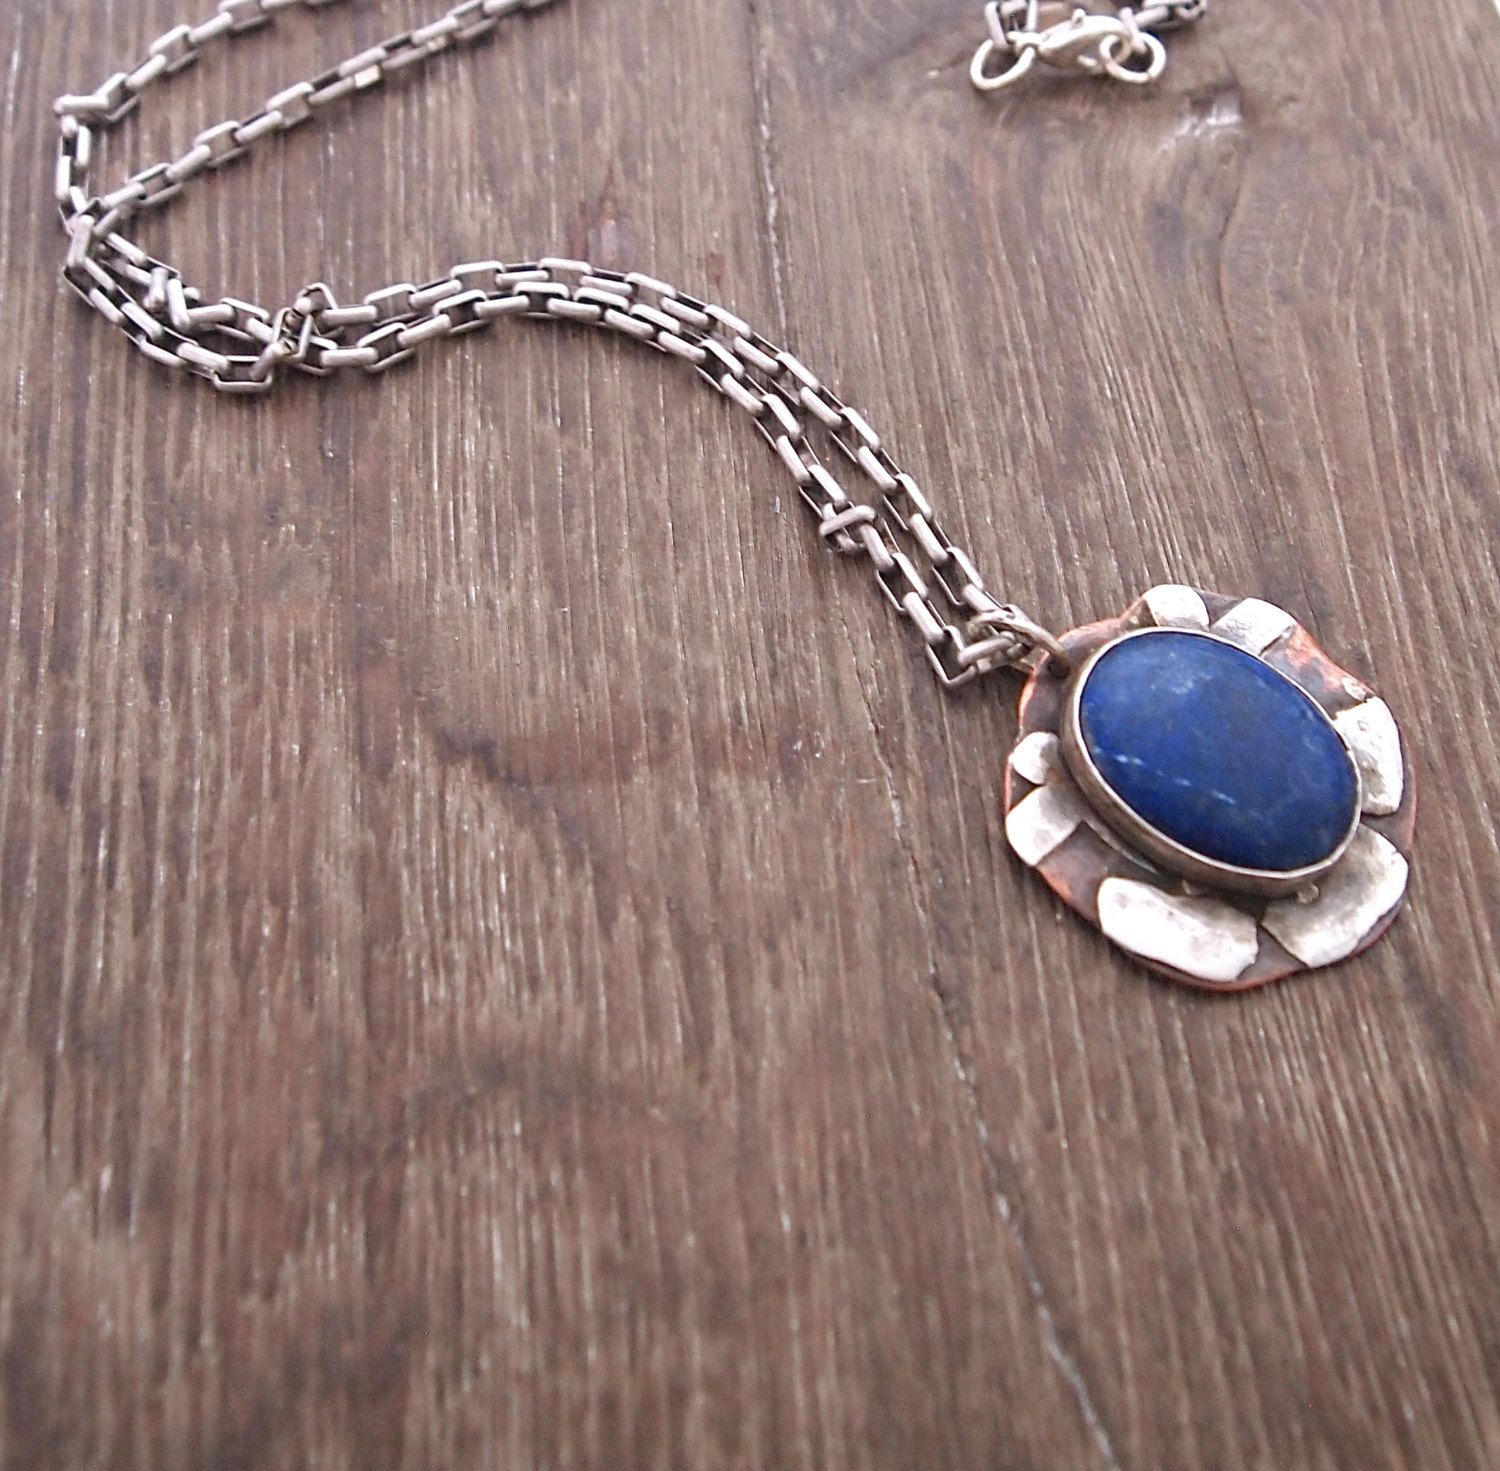 Lapis Pendant Necklace, Copper and Silver Necklace, Long Chain Necklace, Navy Gemstone Pendant, Flower Pendant, Mixed Metal Artisan Jewelry by ShillyShallyjewelry on Etsy